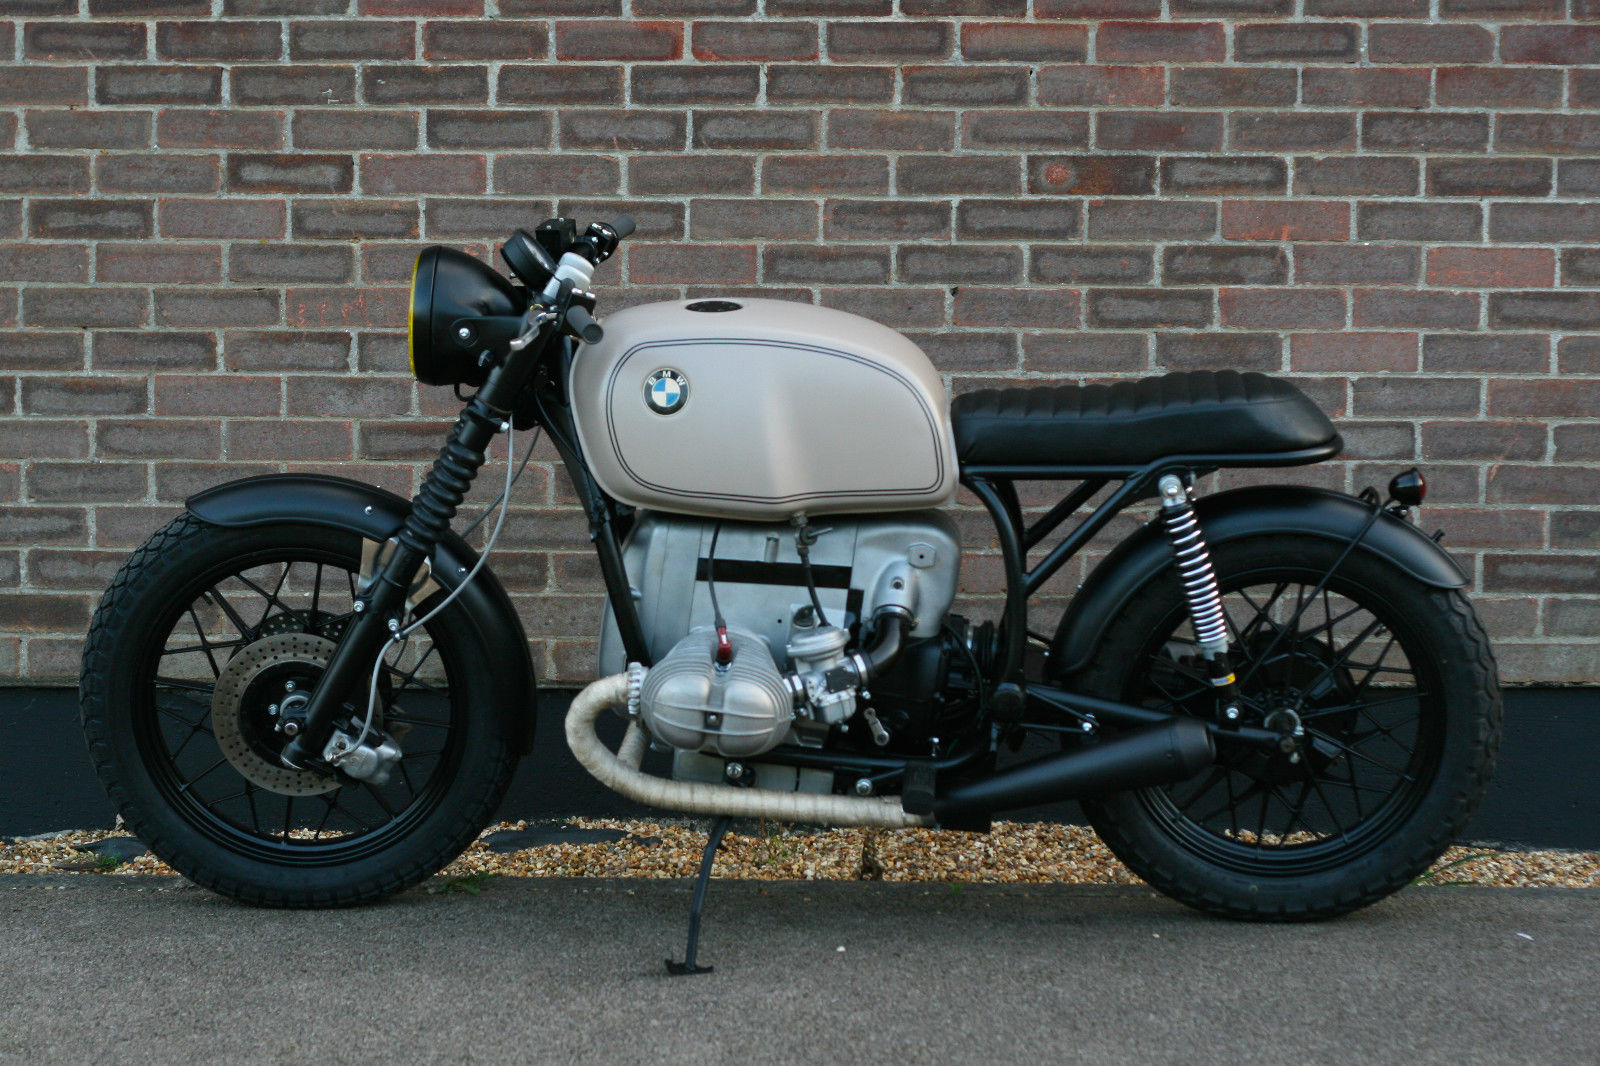 710 Bmw R100 Caferacer Brat Airhead R90 R80 R75 together with Ecu Fault moreover 222560176329 as well Car Air Conditioner Not Working Or Is Weak further 492459 2jzge Na T Tt Ecu Mod. on bmw engine coils